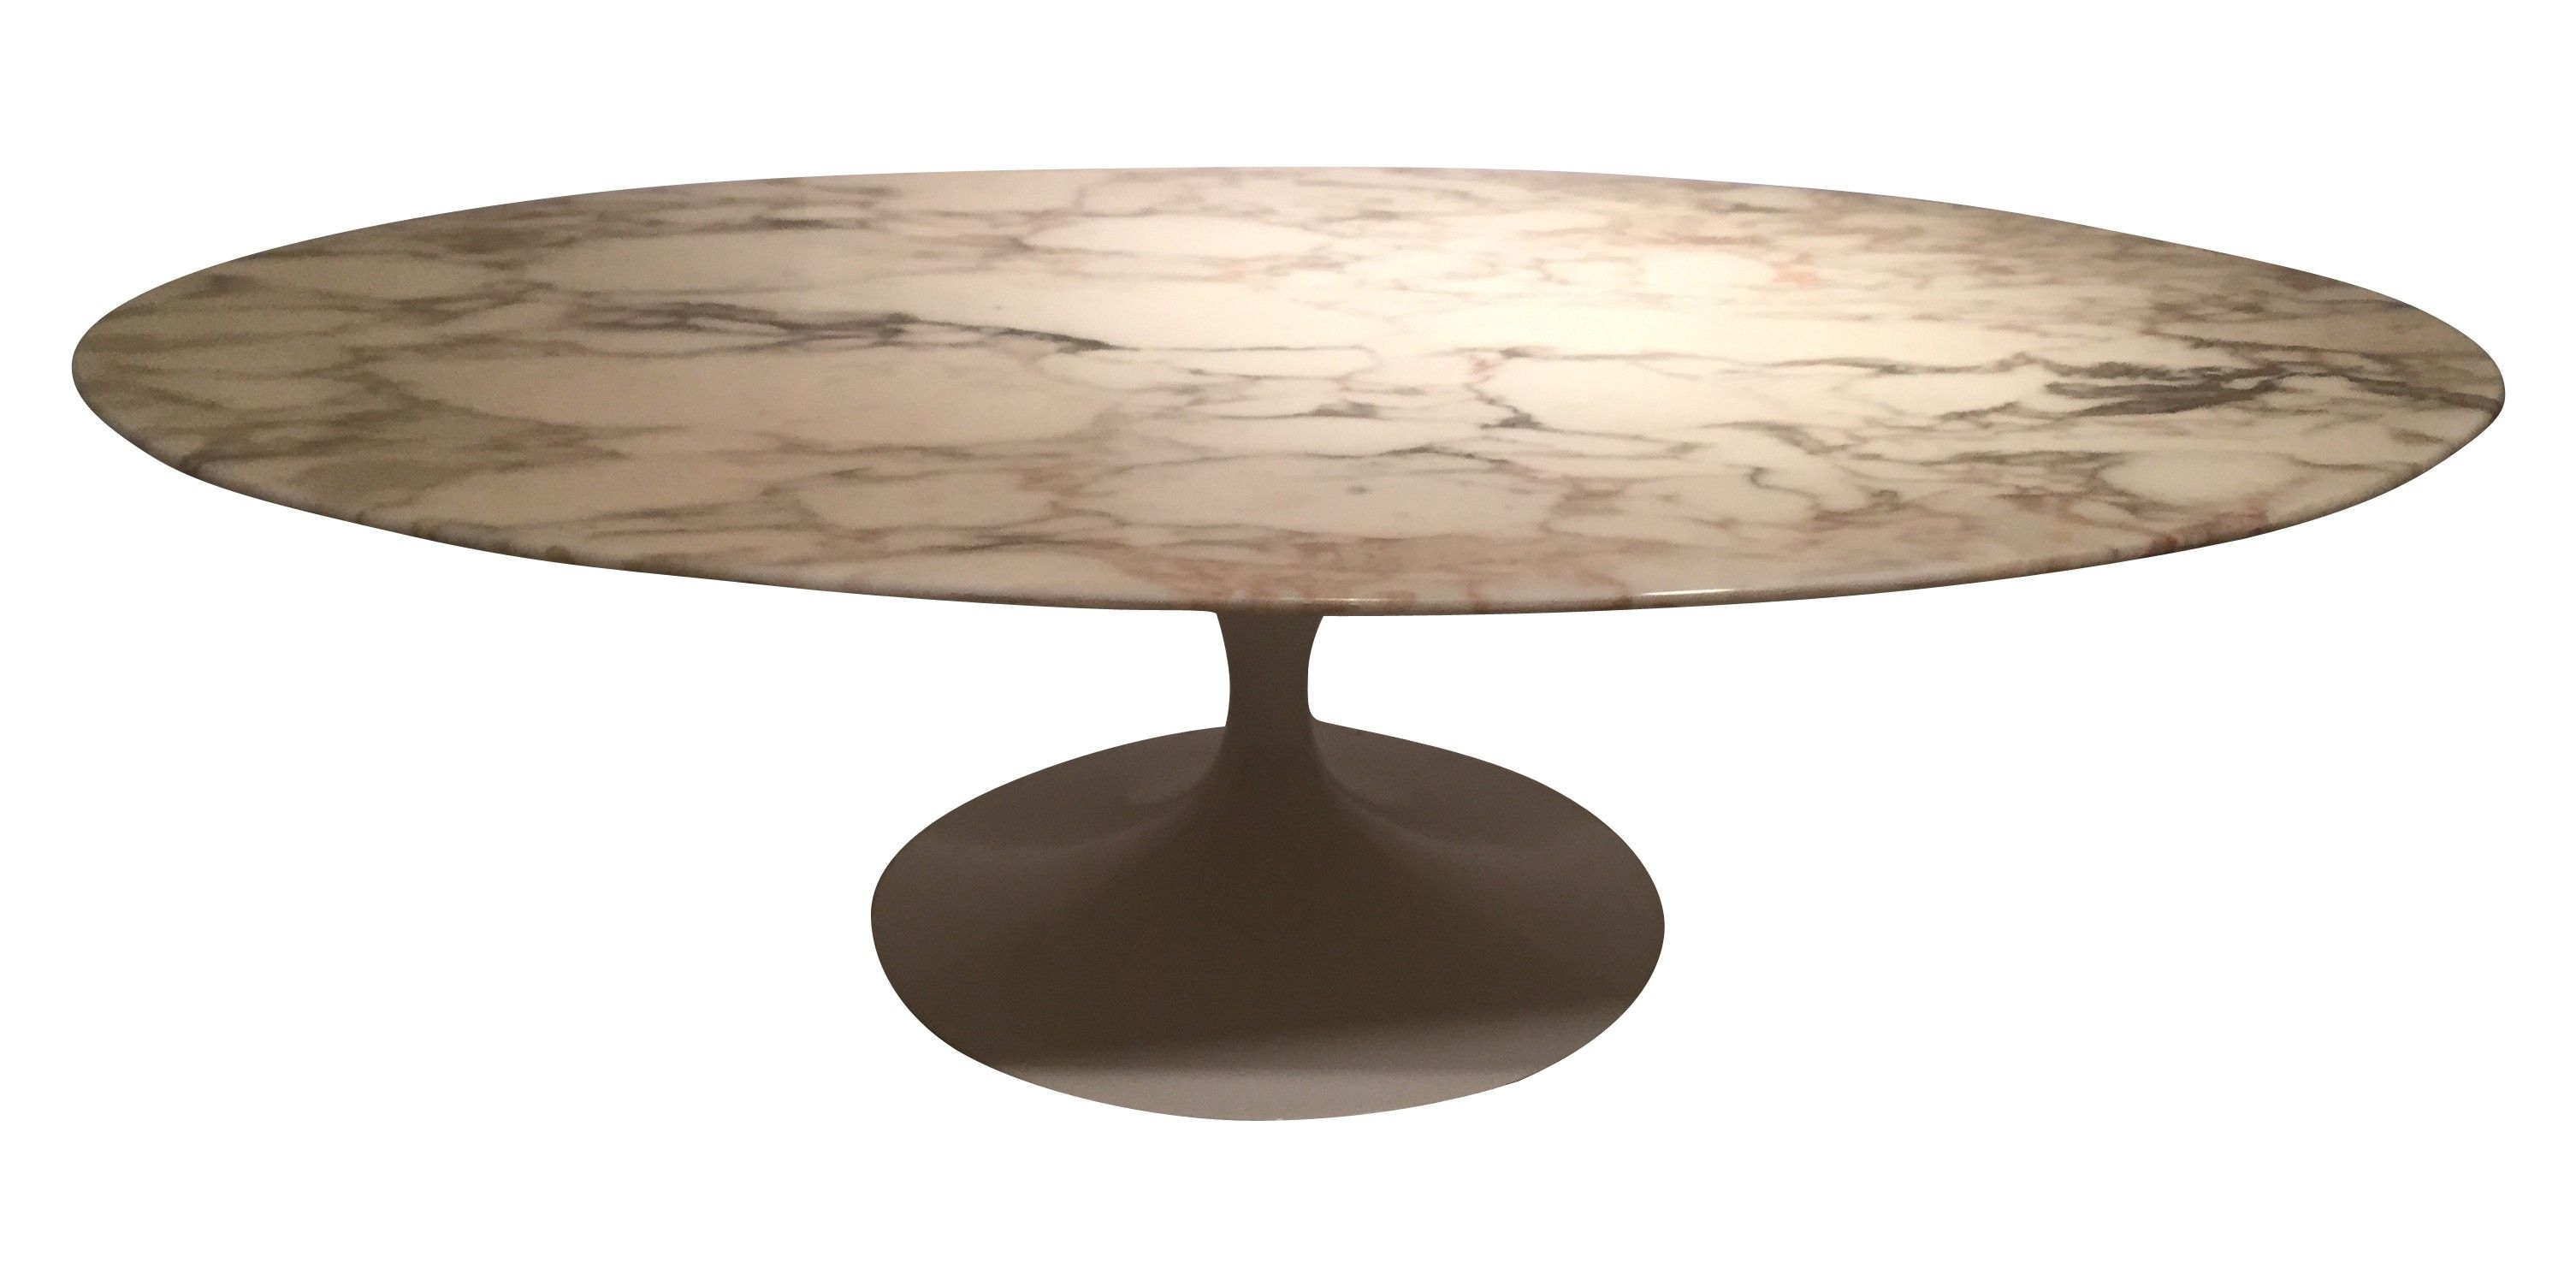 Grande table basse ovale en marbre eero saarinen ann es for Table basse marbre